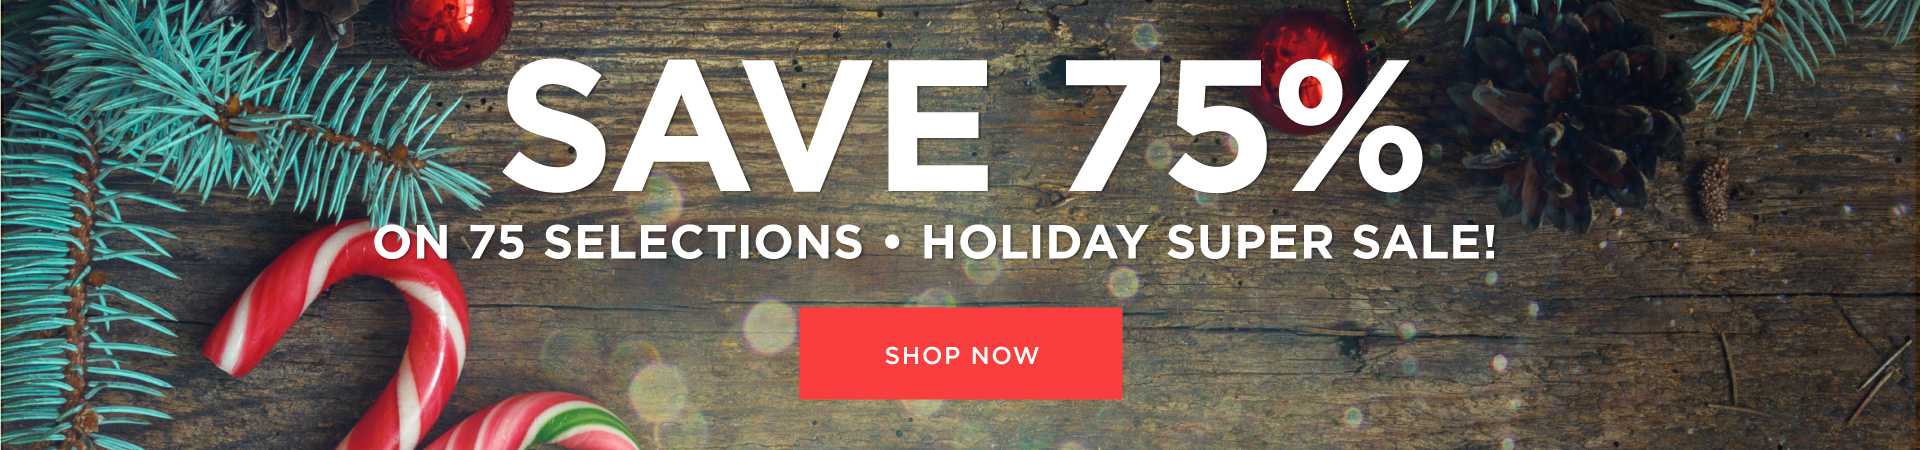 2016 Holiday Super Sale